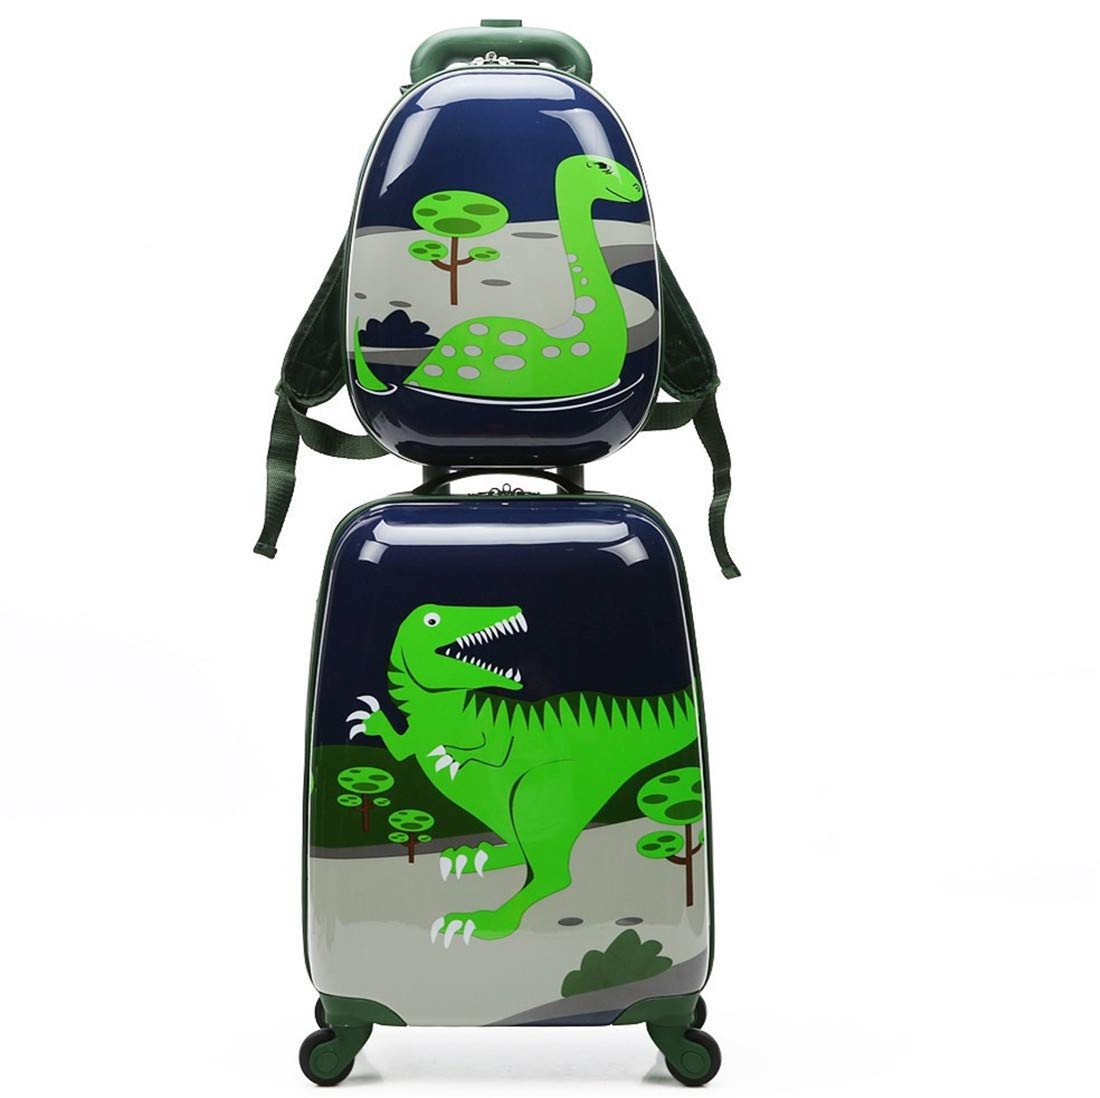 2pcs Children Rolling Suitcase Animal Cartoon Pattern Carry On Set With Universal Wheels 18 in with 13 in Cute Cartoon Shoulder Bag Travel Luggage Case Set (Dinosaur, 18'' and 13'')